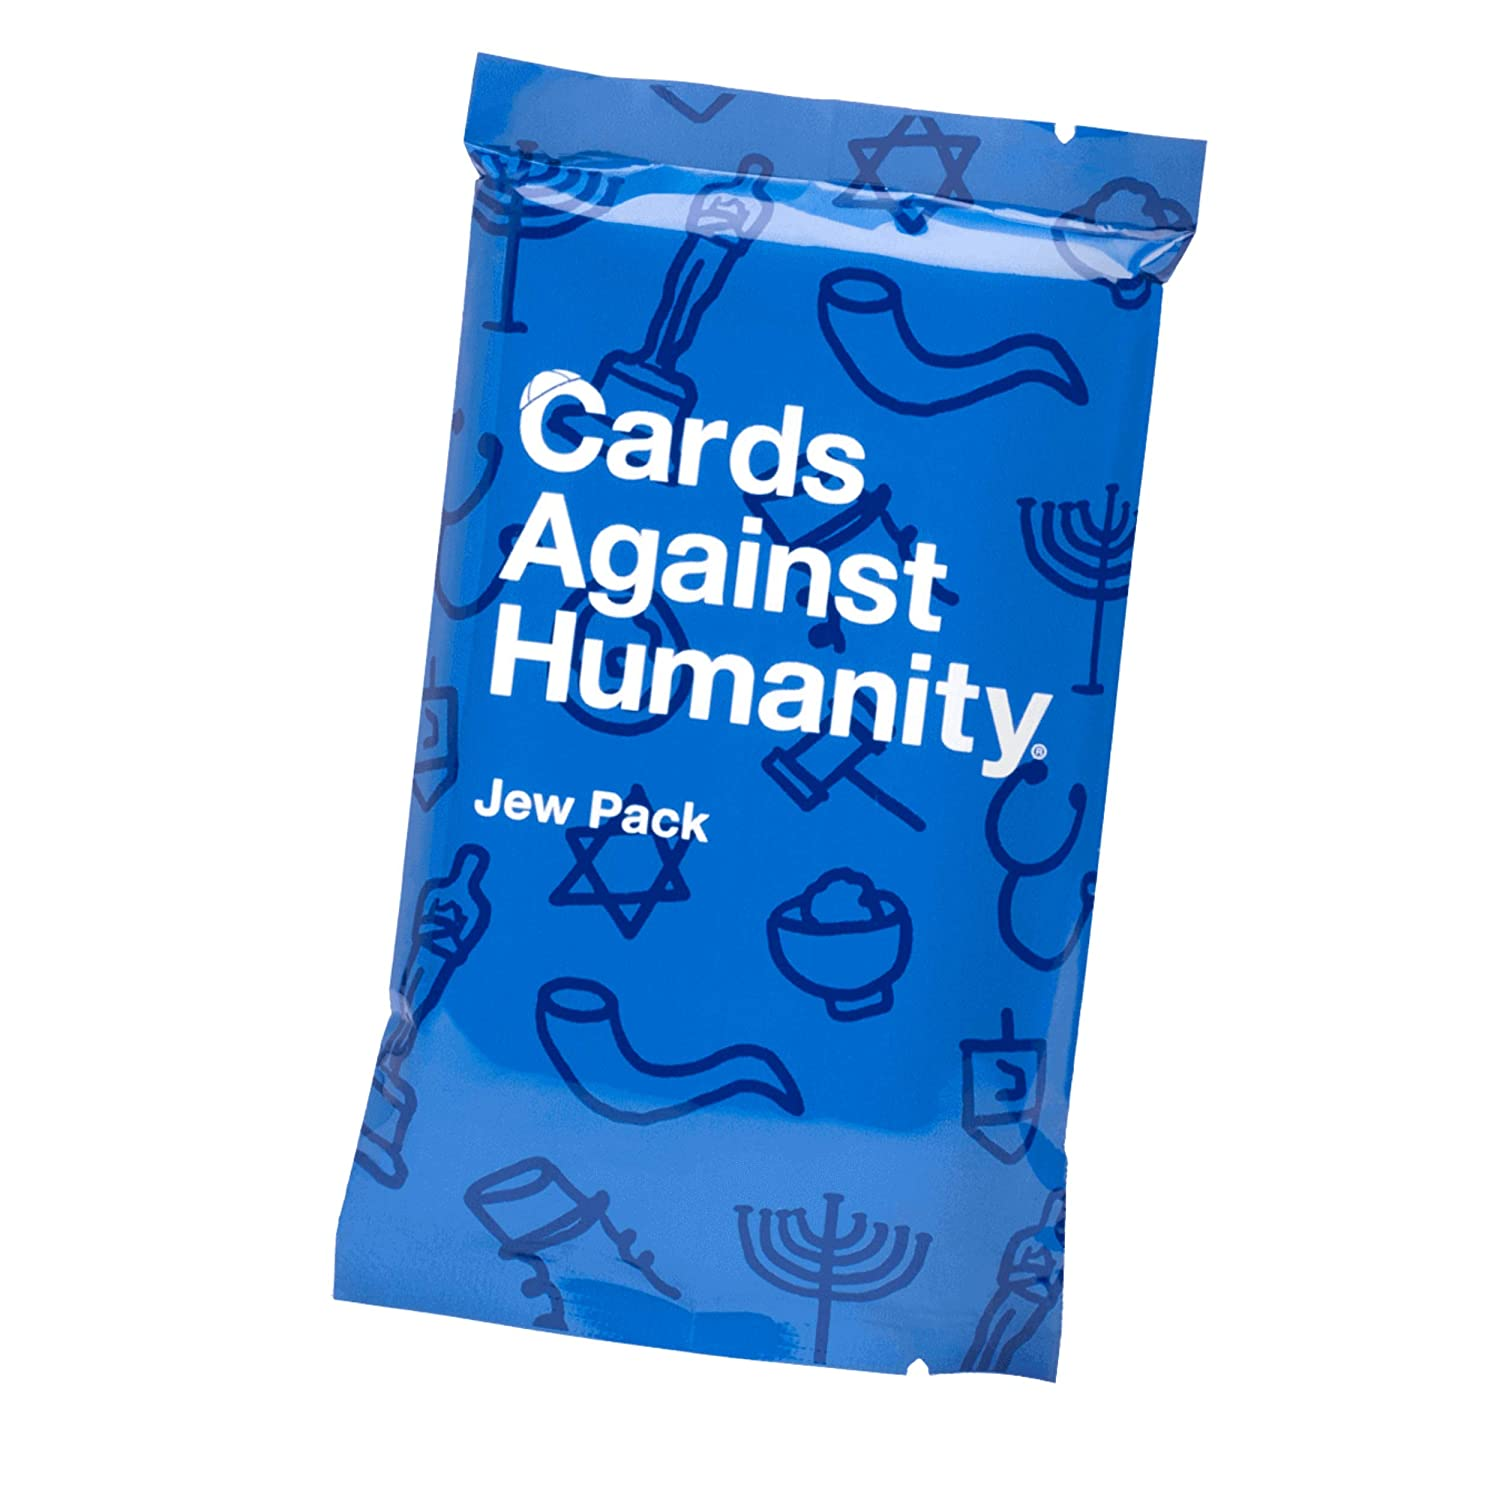 Amazon.com: Cards against humanity Jew Pack paquete de ...